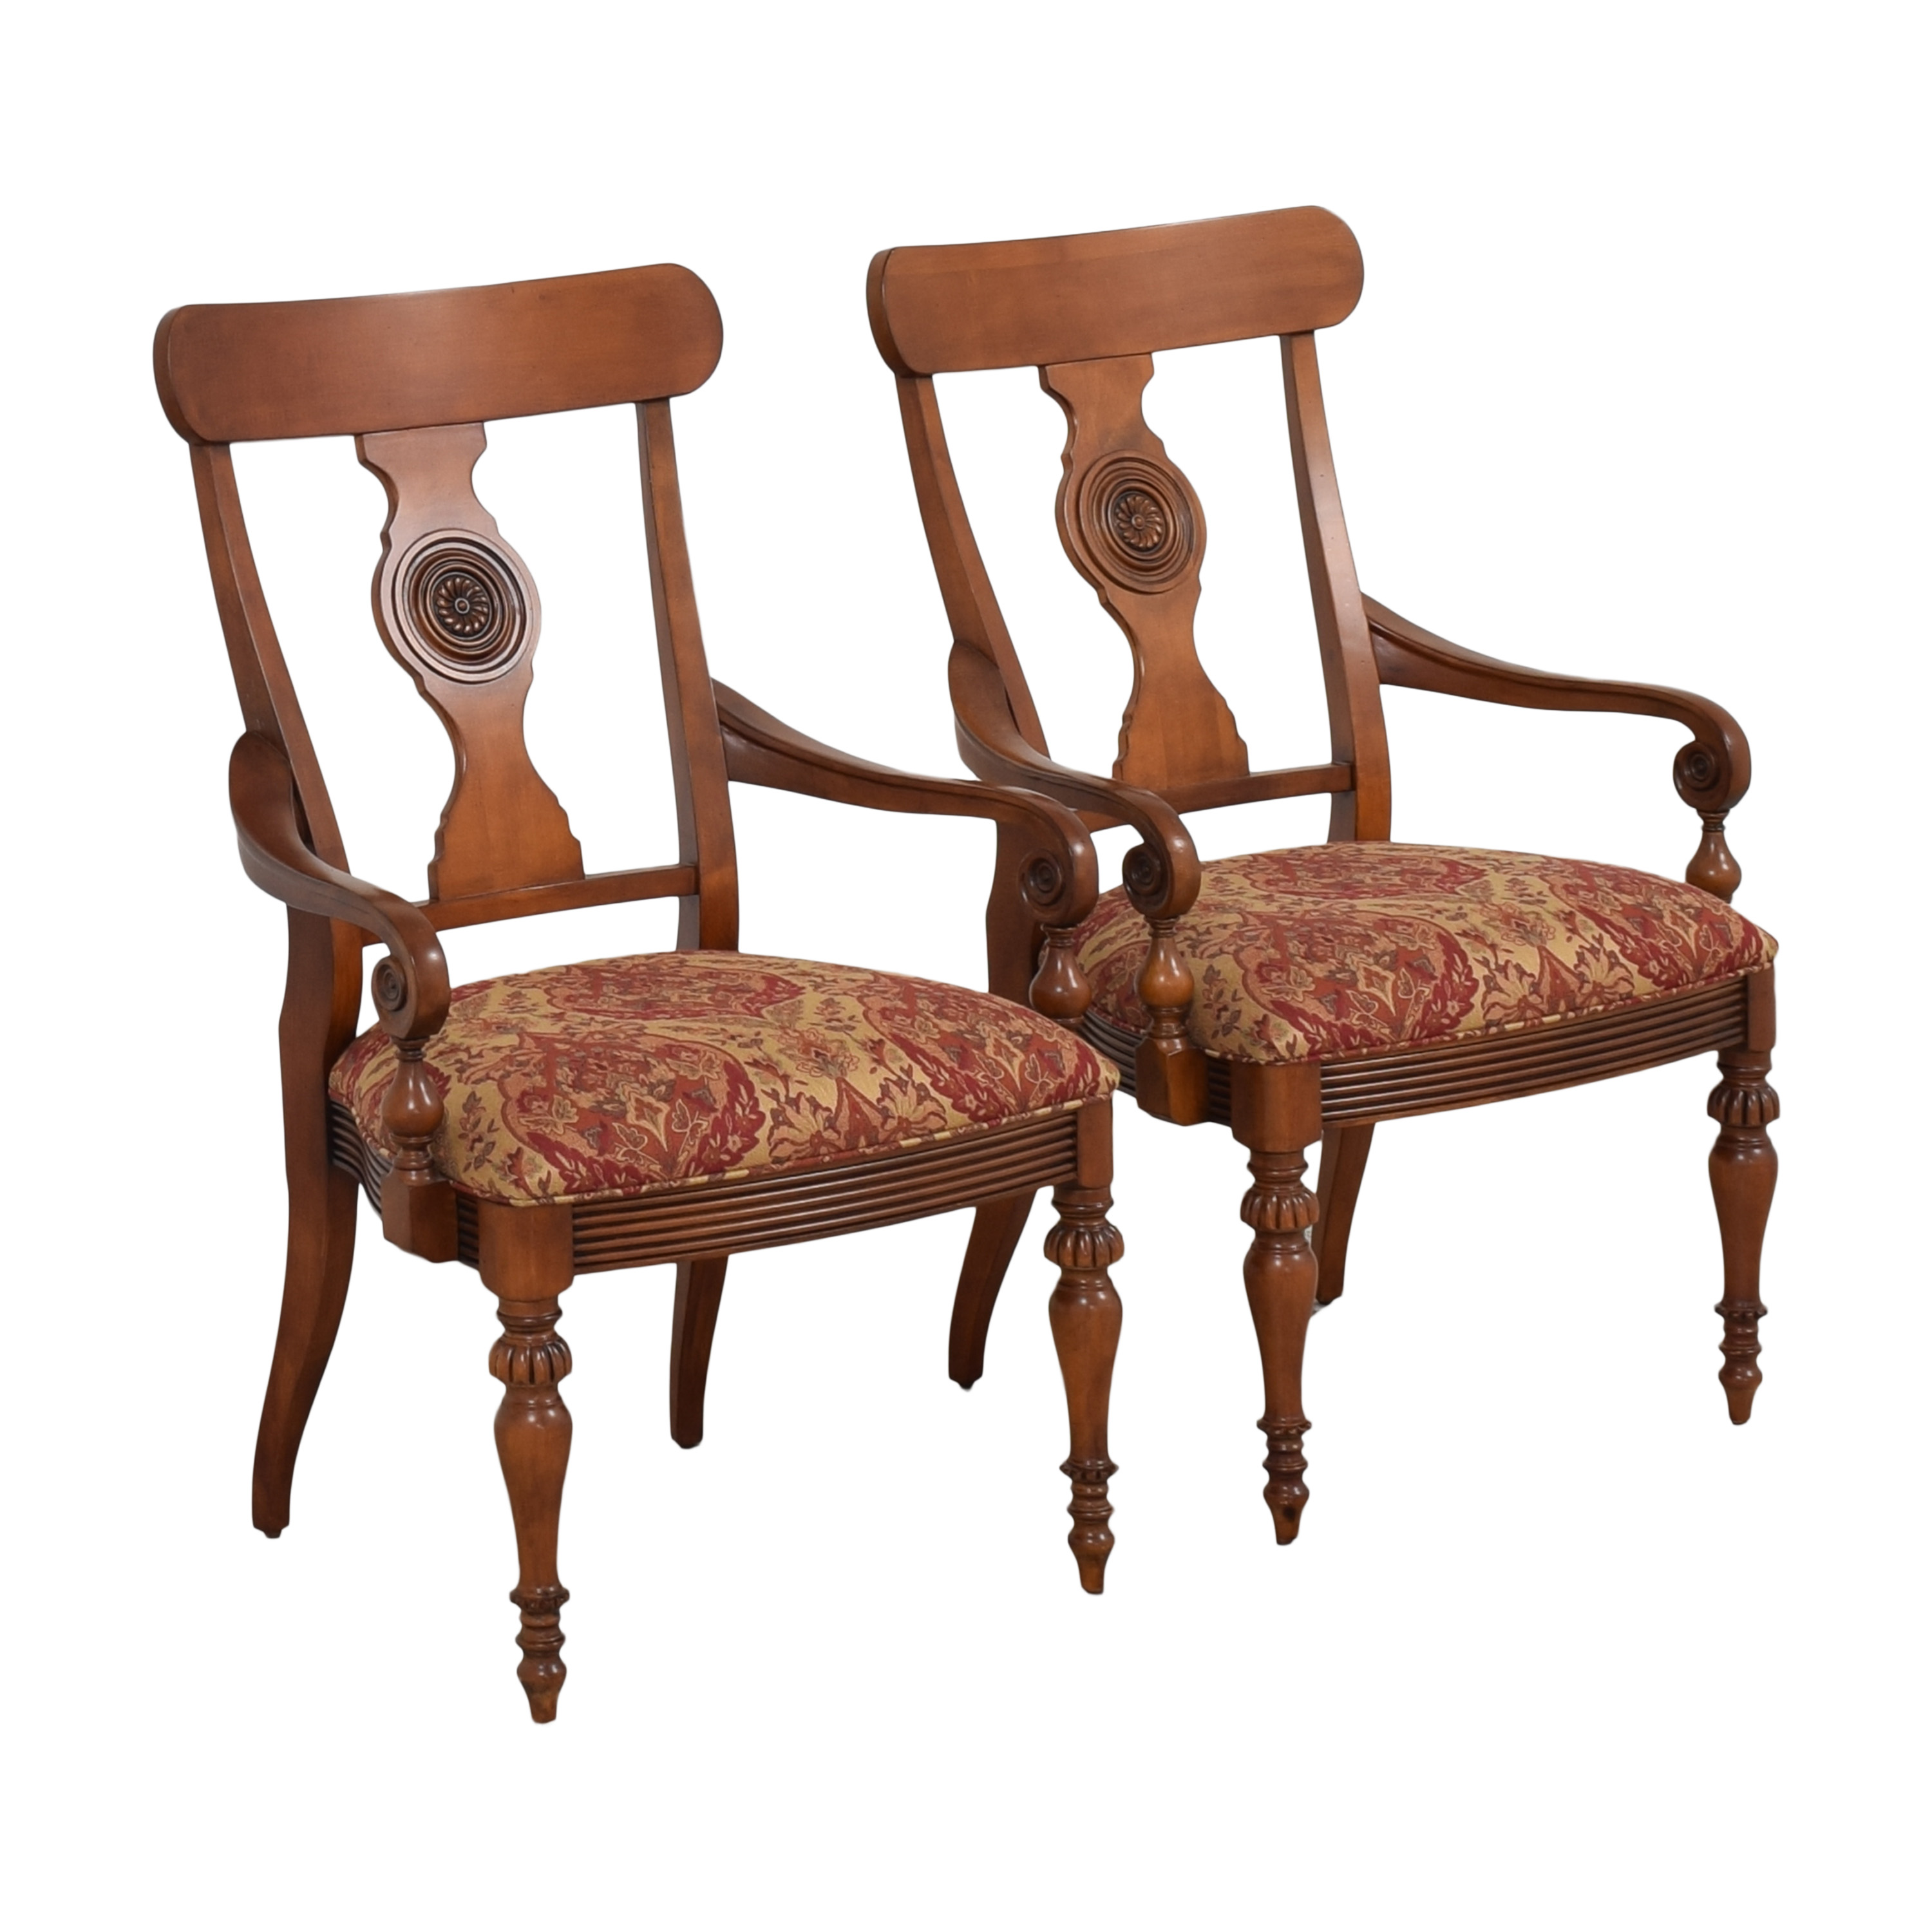 Ethan Allen Ethan Allen British Classics Dining Arm Chairs on sale